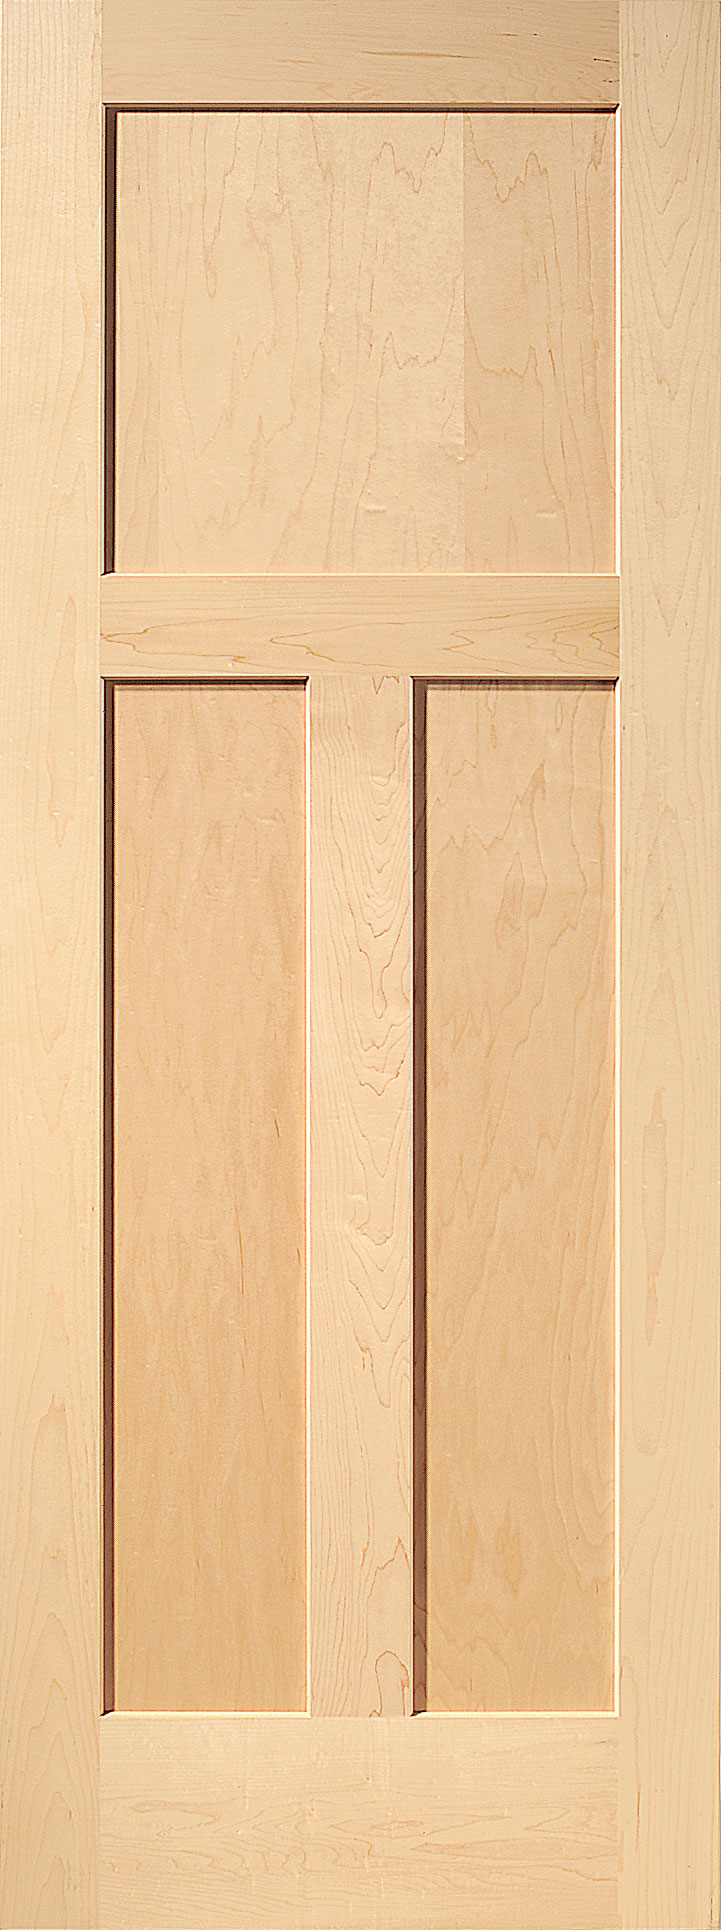 Maple mission 3 panel wood interior door homestead doors for Solid wood panel interior doors